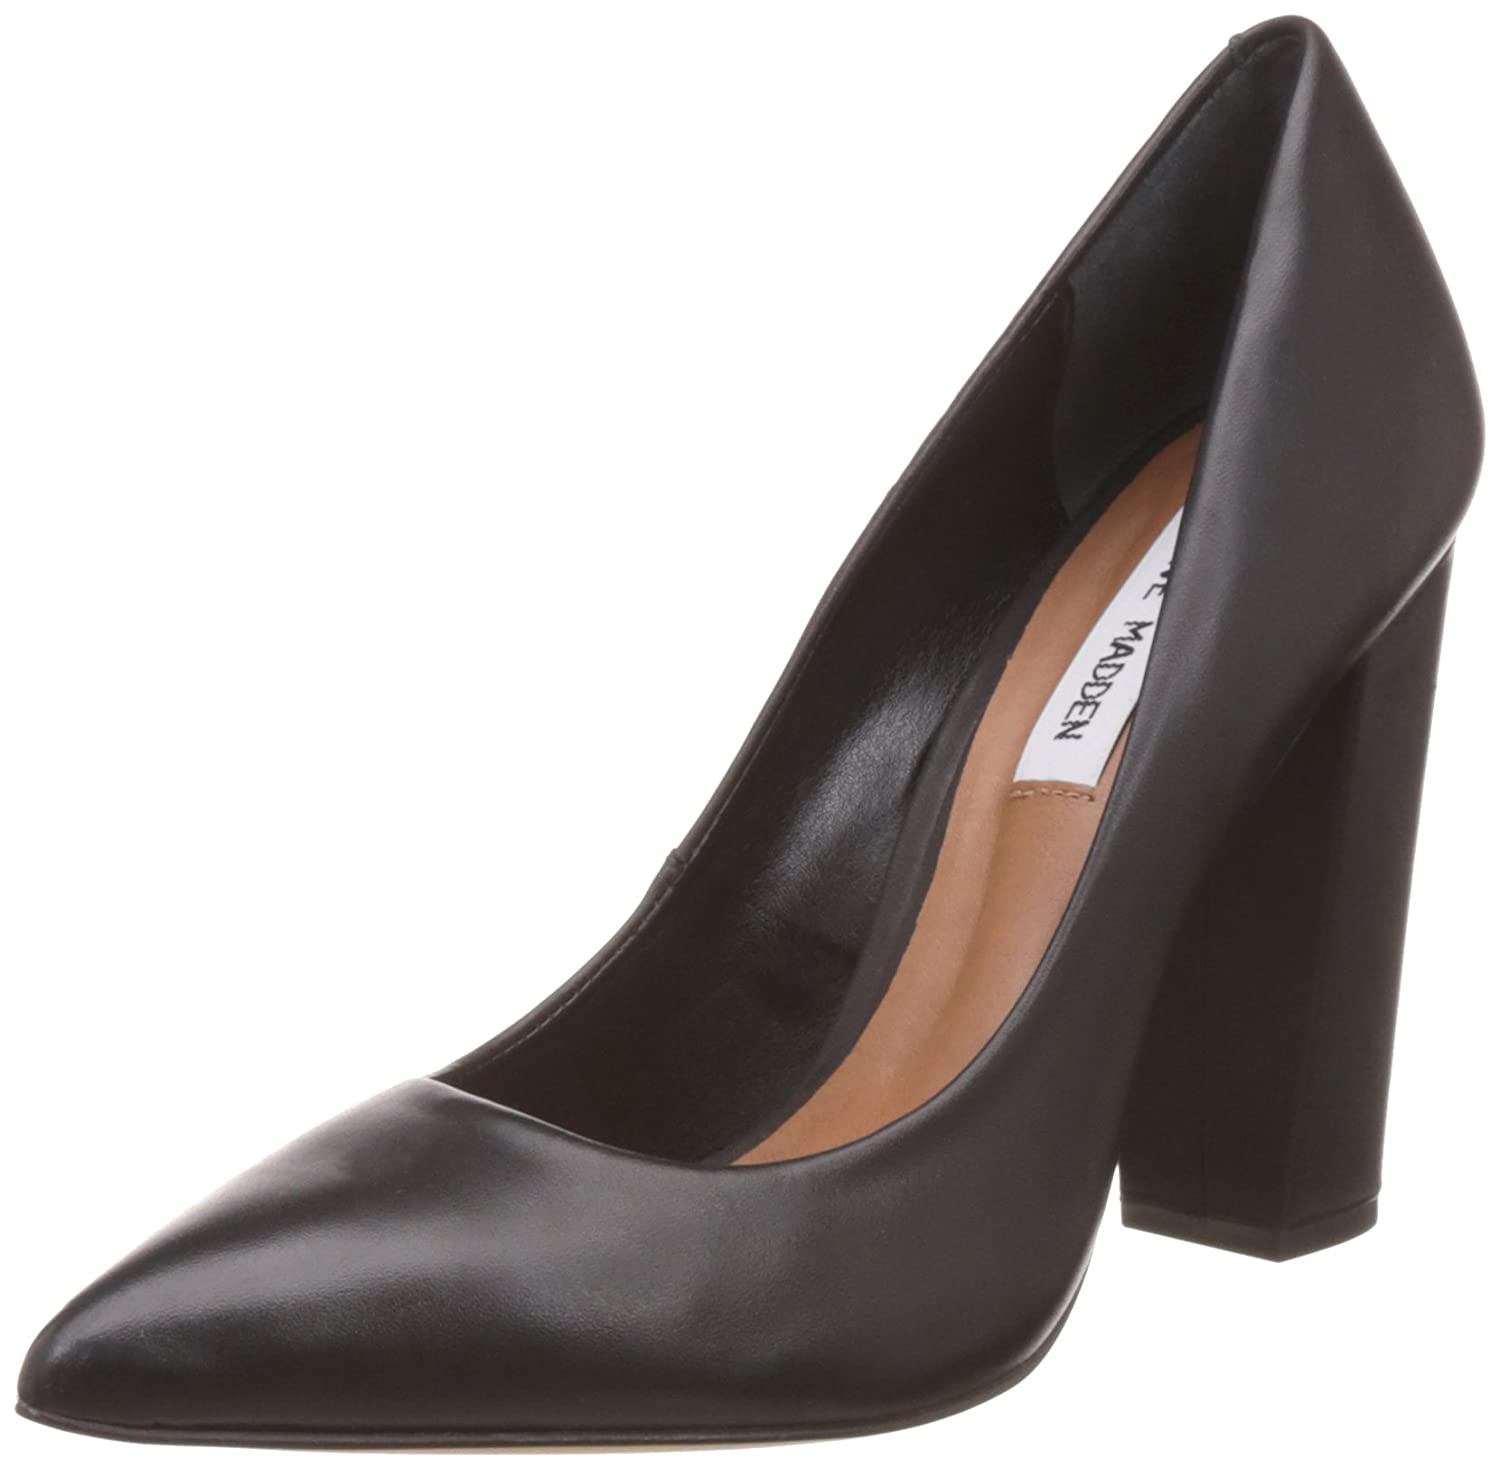 77116831c27 Steve Madden Women s Primpy Leather Pumps  Buy Online at Low Prices in  India - Amazon.in